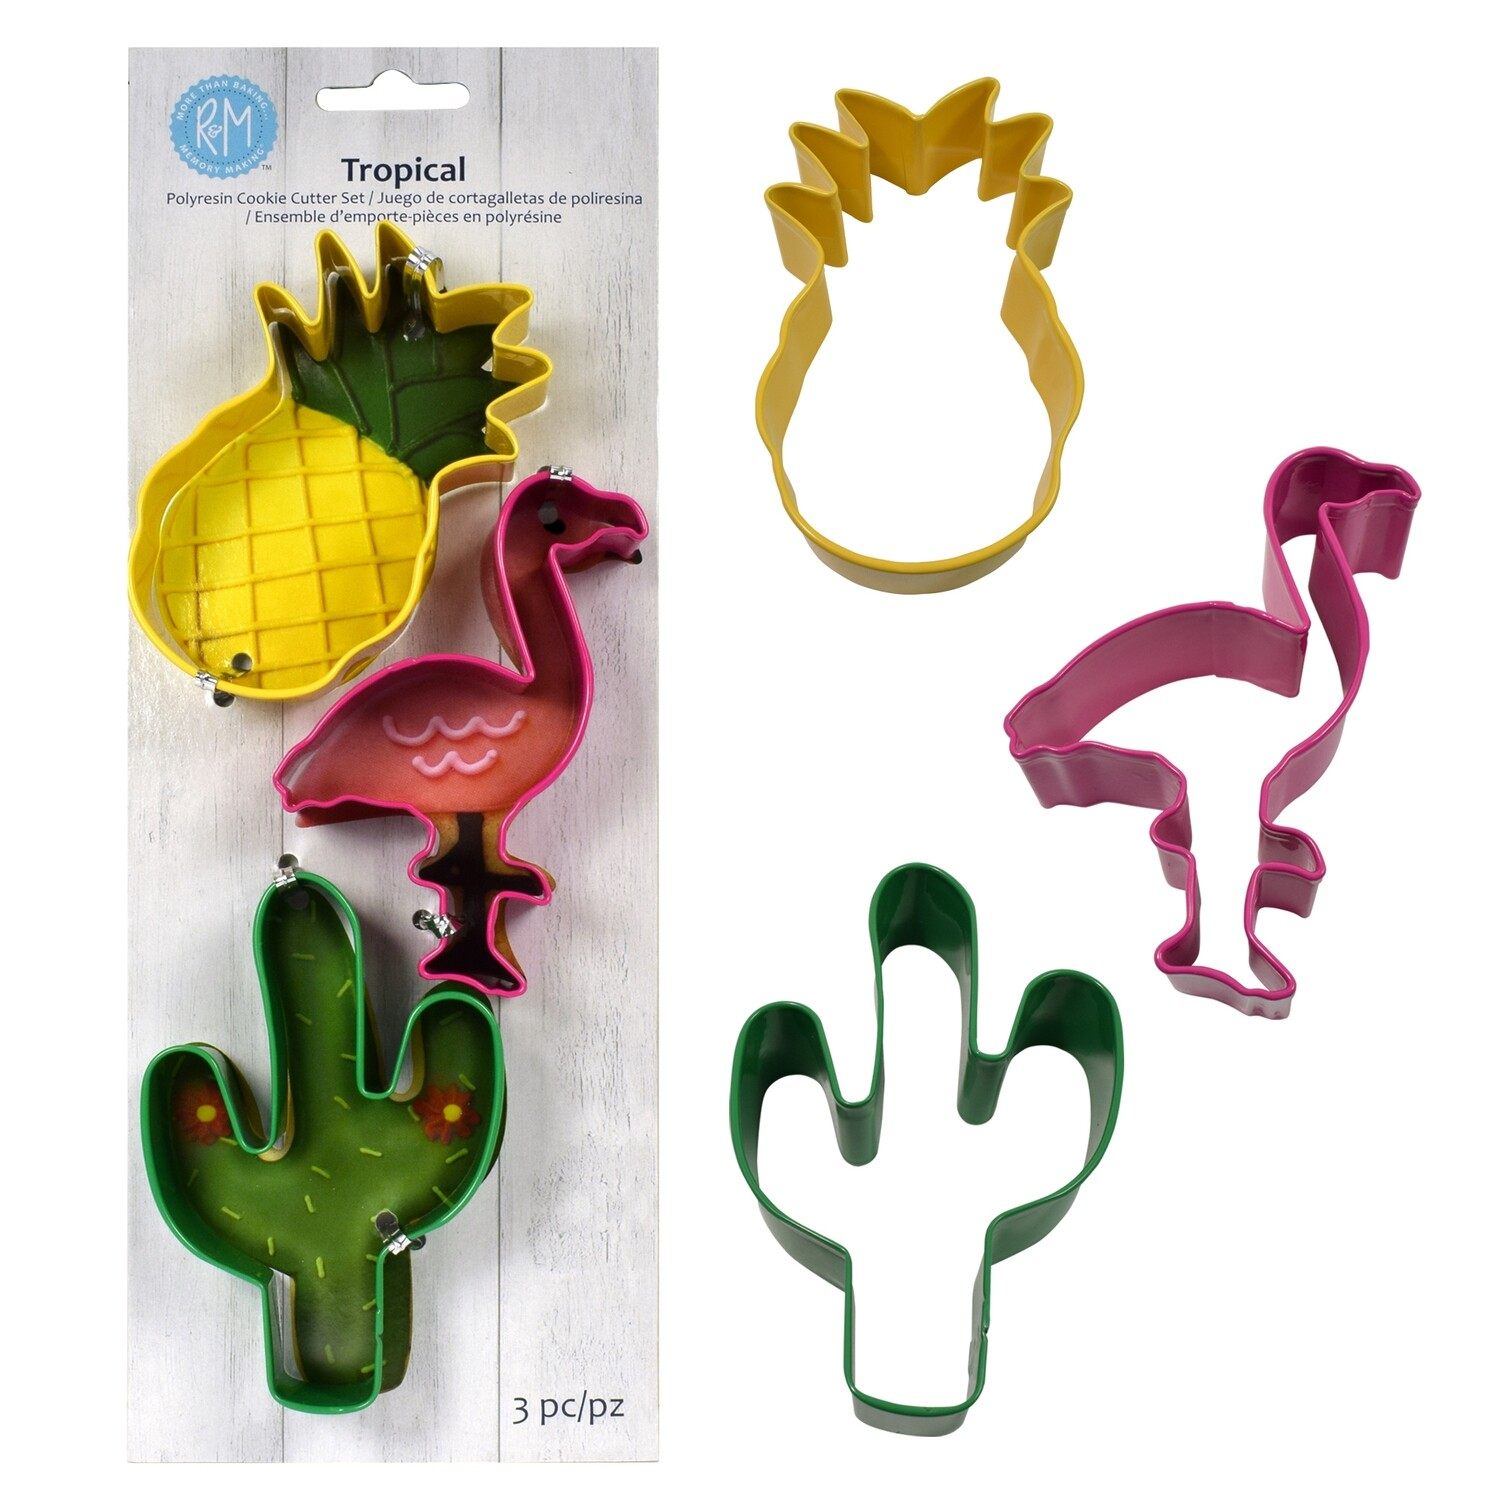 By AH -Set of 3 Cookie Cutters -TROPICAL MIX - Σετ 3 κουπ πατ με Τροπικό θέμα